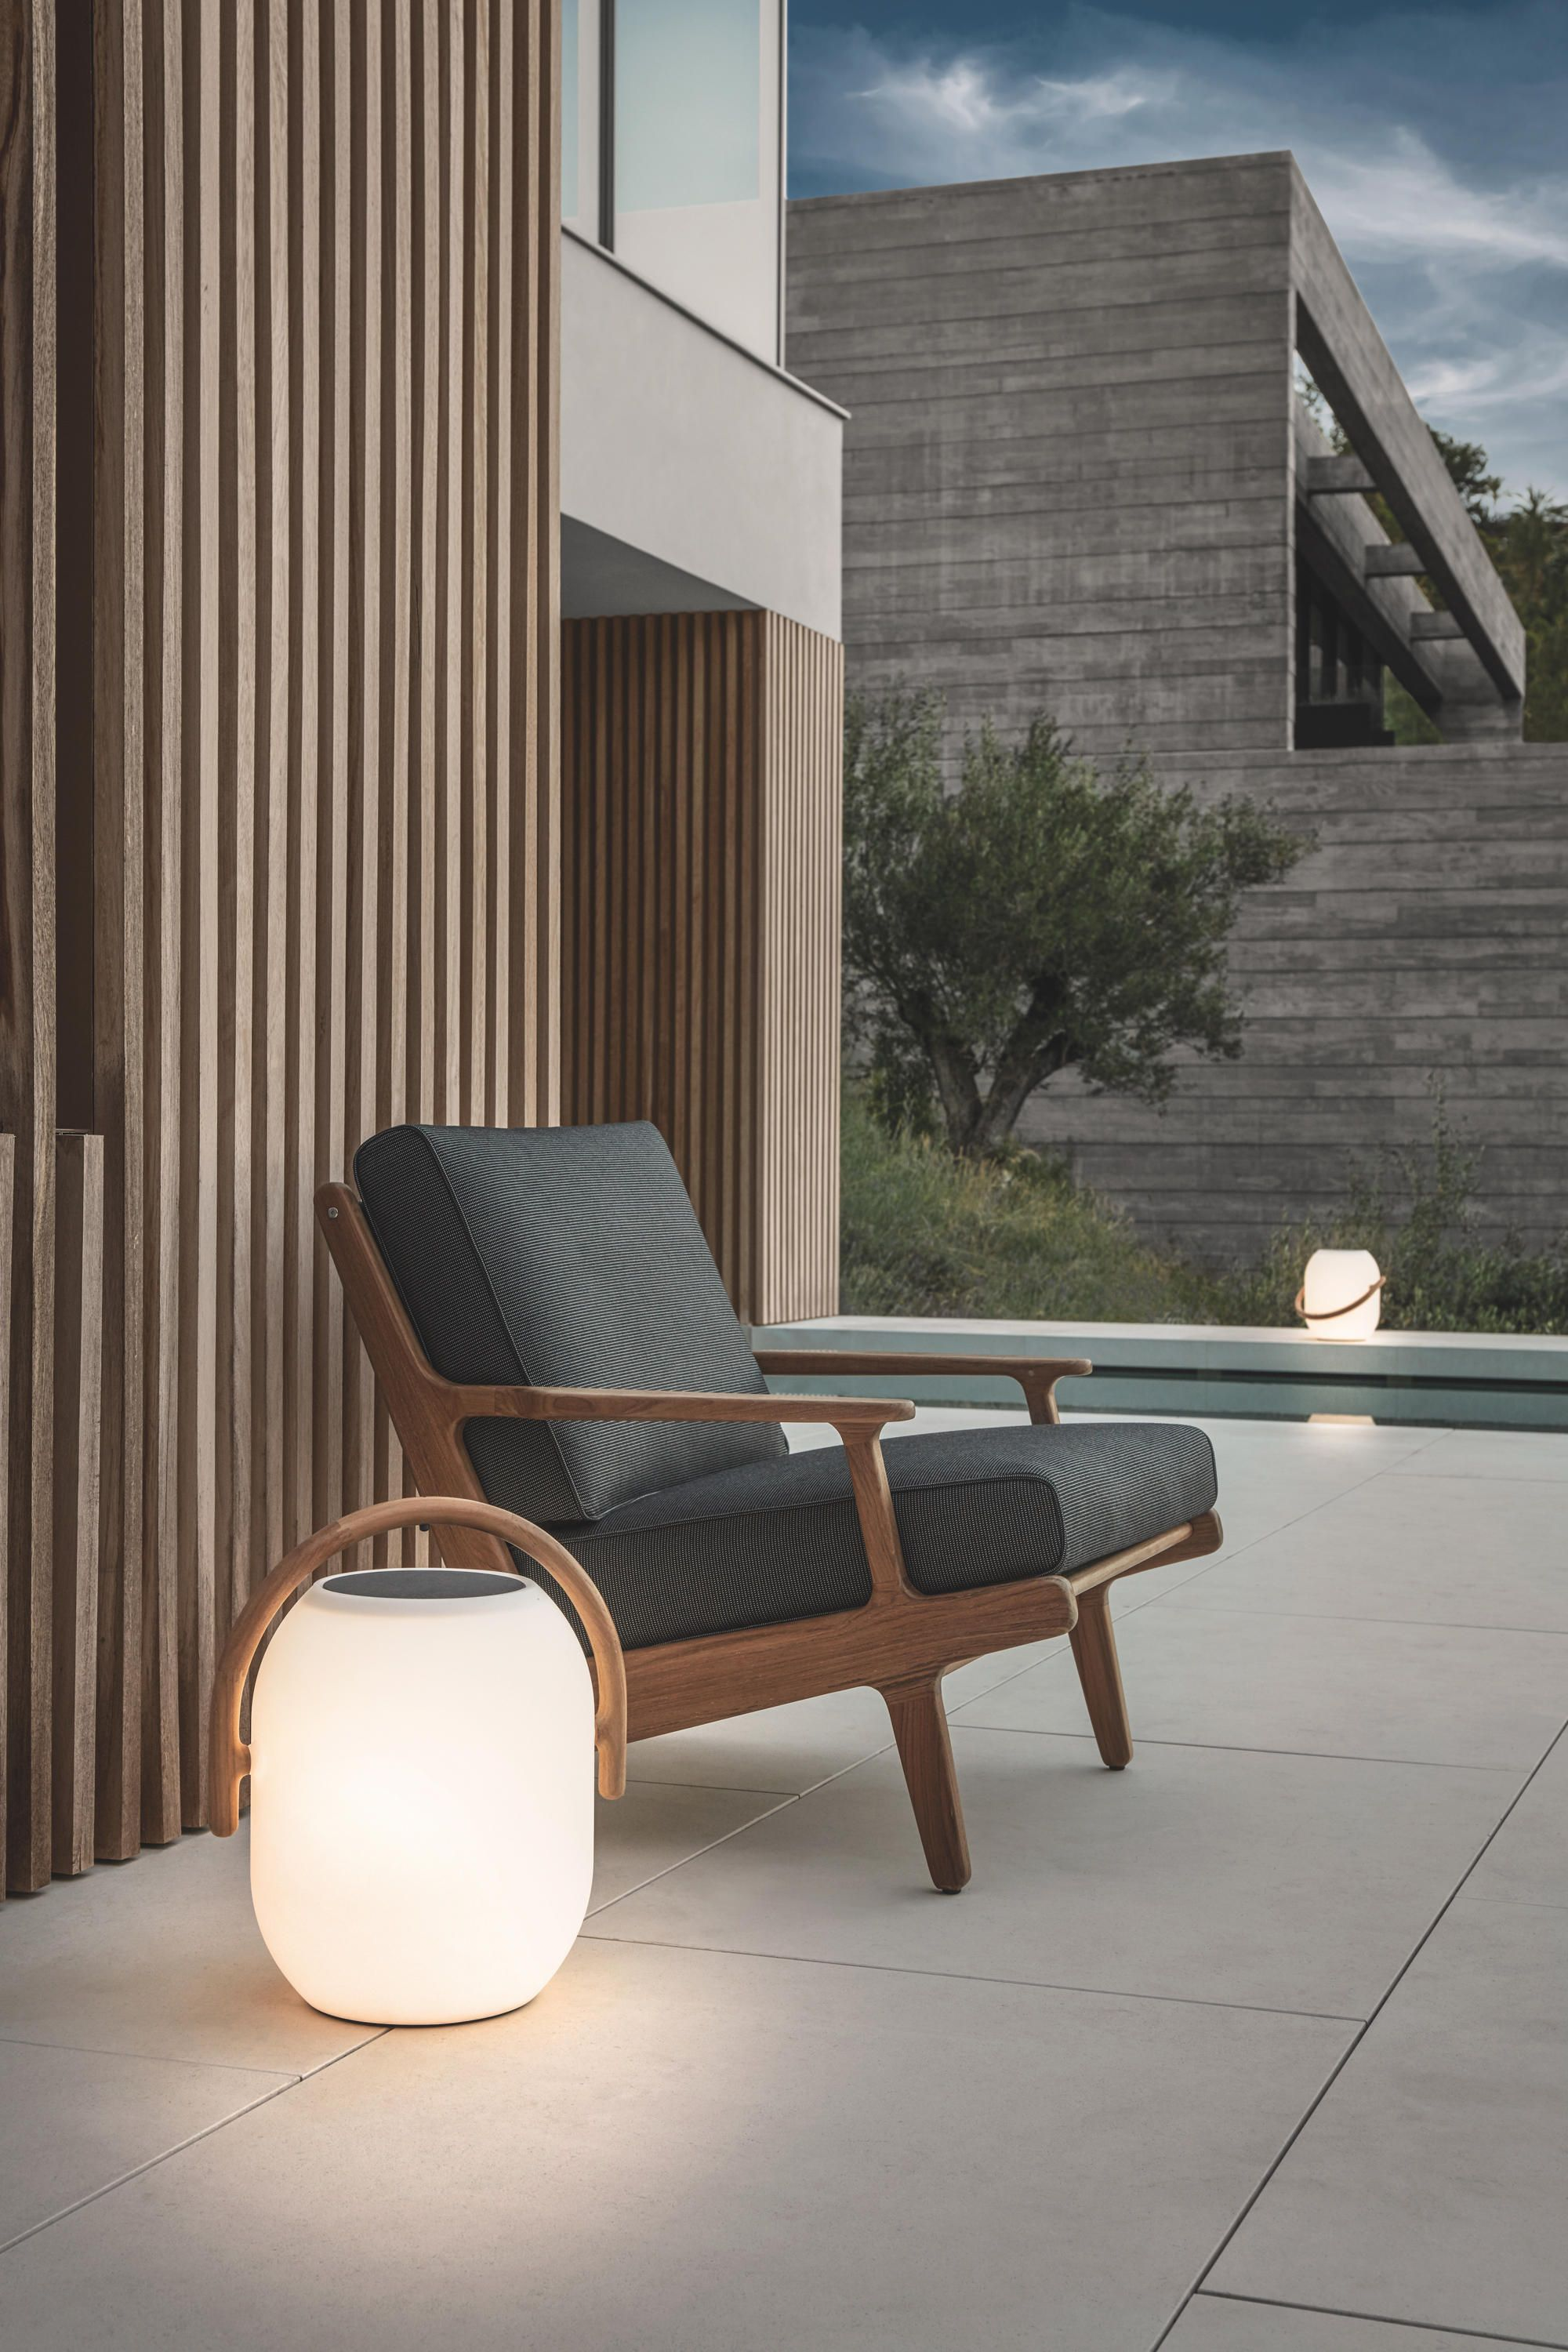 Mobilier Exterieur Gloster All About Bay Reclining Chair By Gloster Furniture On Architonic